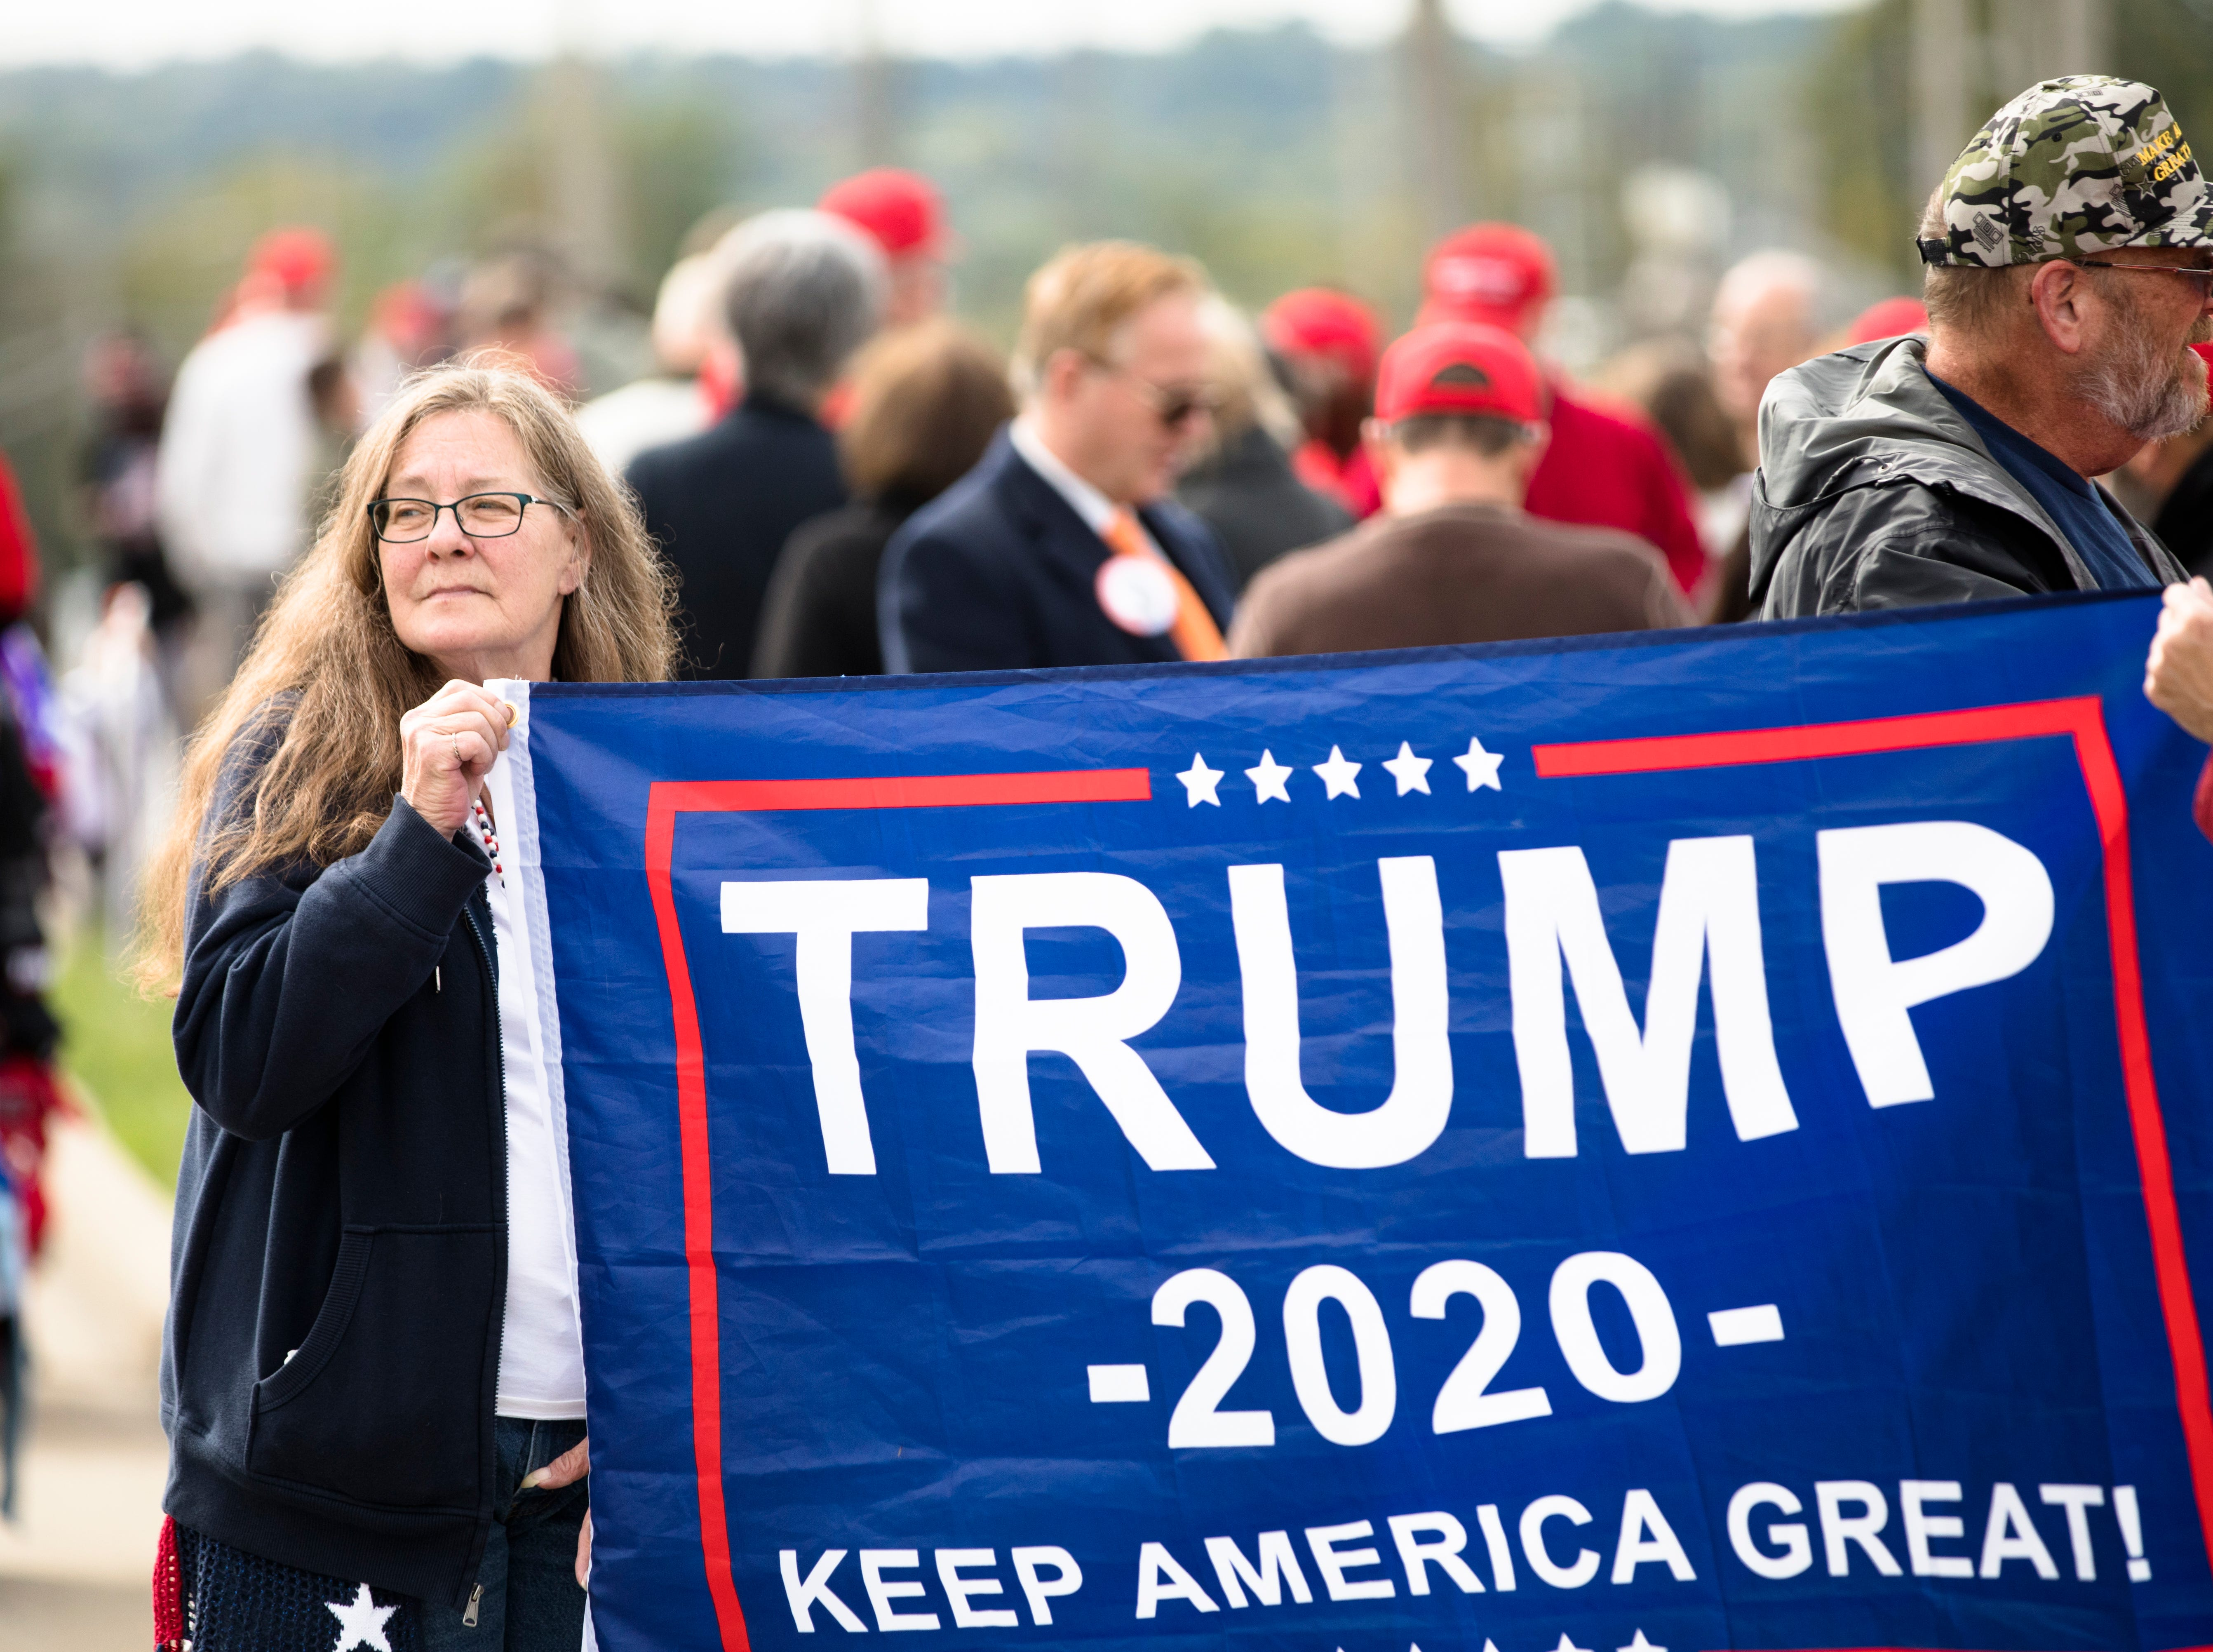 April Tate, of Green County, Ohio, holds a flag while waiting in line for President Donald J. Trump's Make America Great Again Rally in Lebanon, Ohio, on Friday, Oct. 12, 2018.